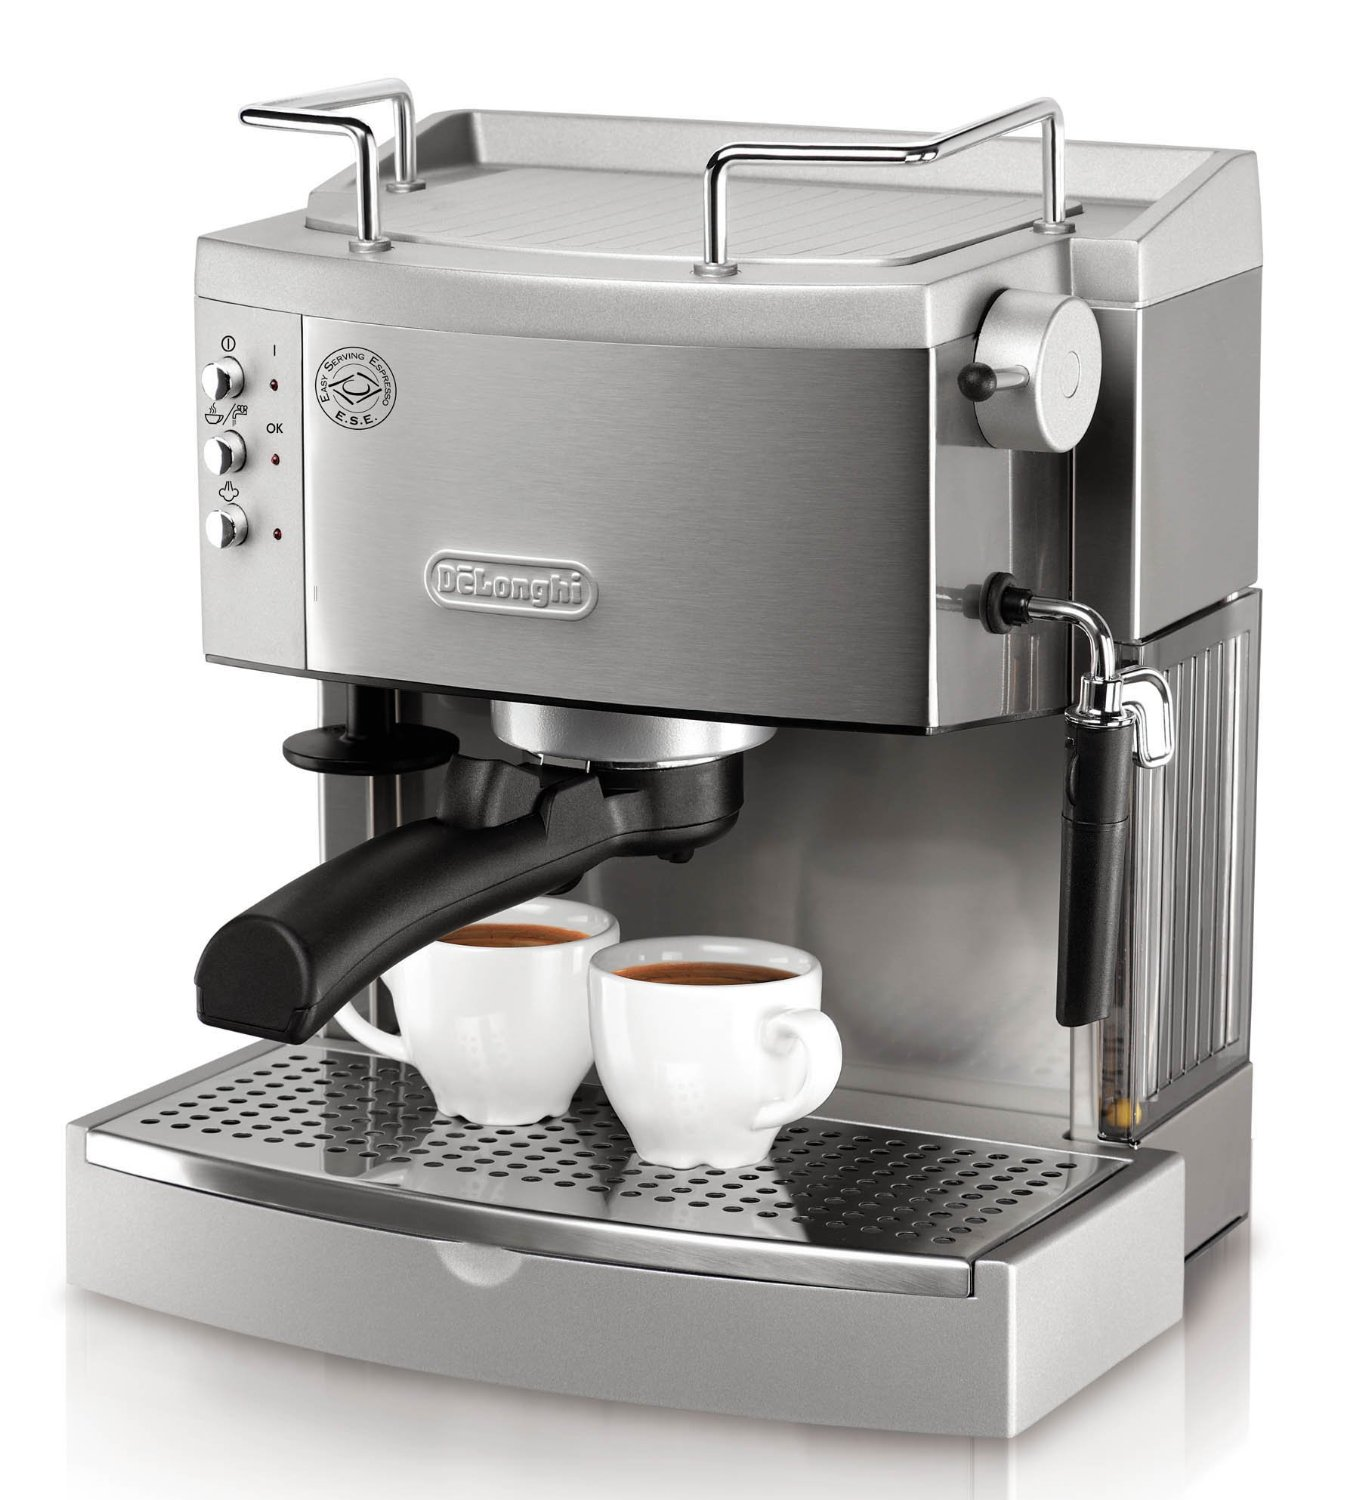 Delonghi espresso machine reviews